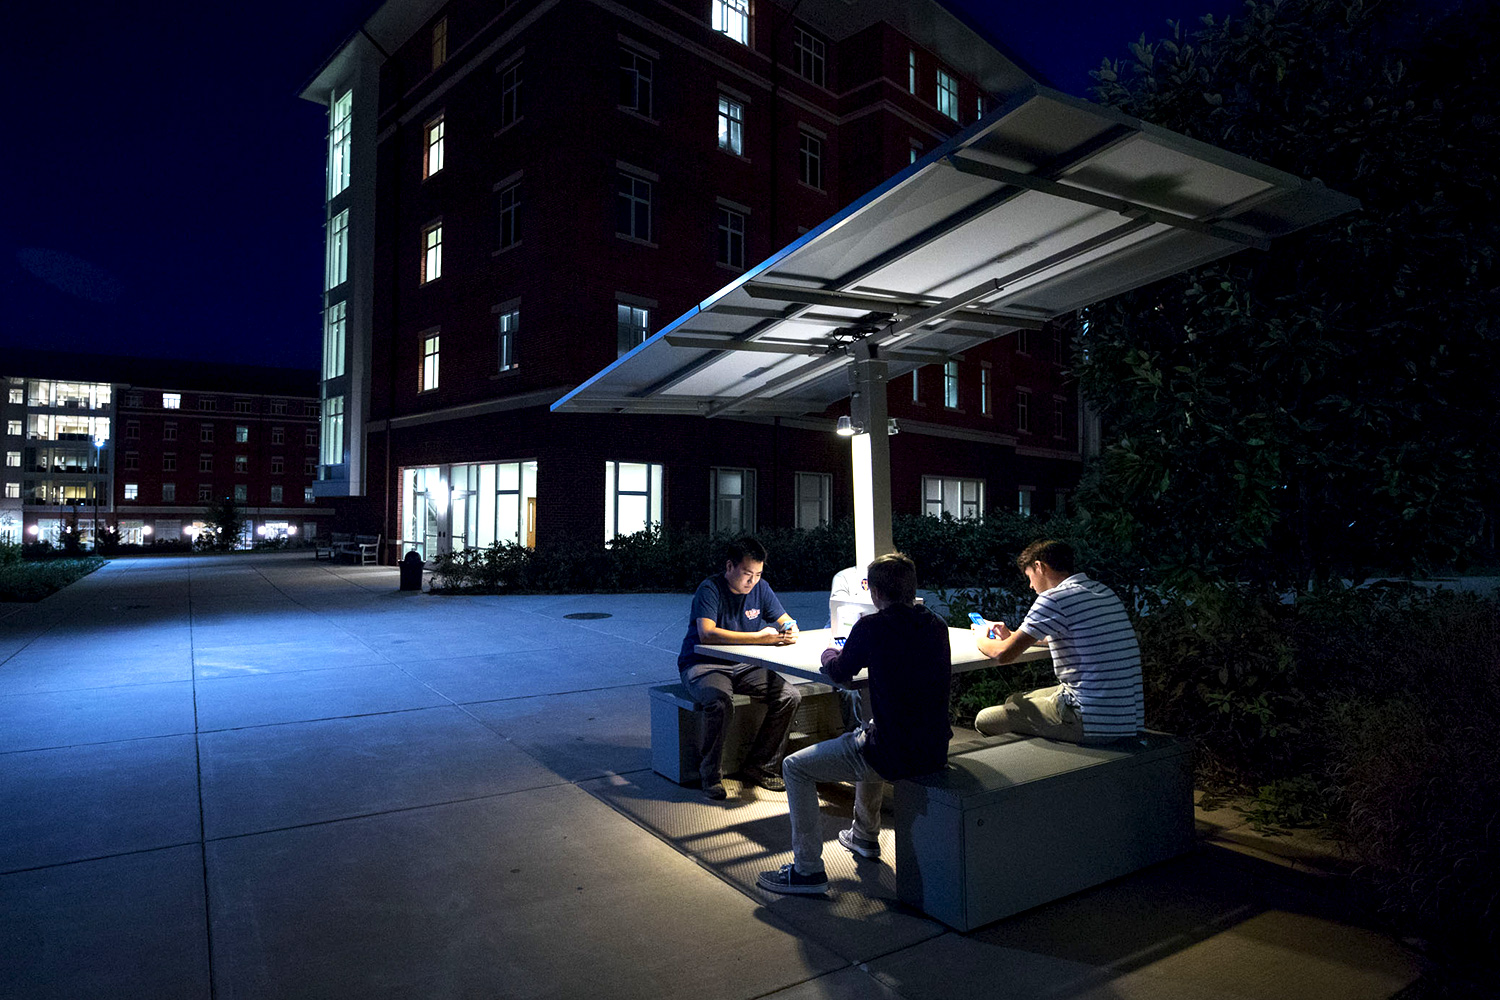 A student initiative resulted in the installation of a solar table outside Lile-Maupin House, where students can recharge batteries while collaborating on projects. (Photo by Sanjay Suchak, University Communications)